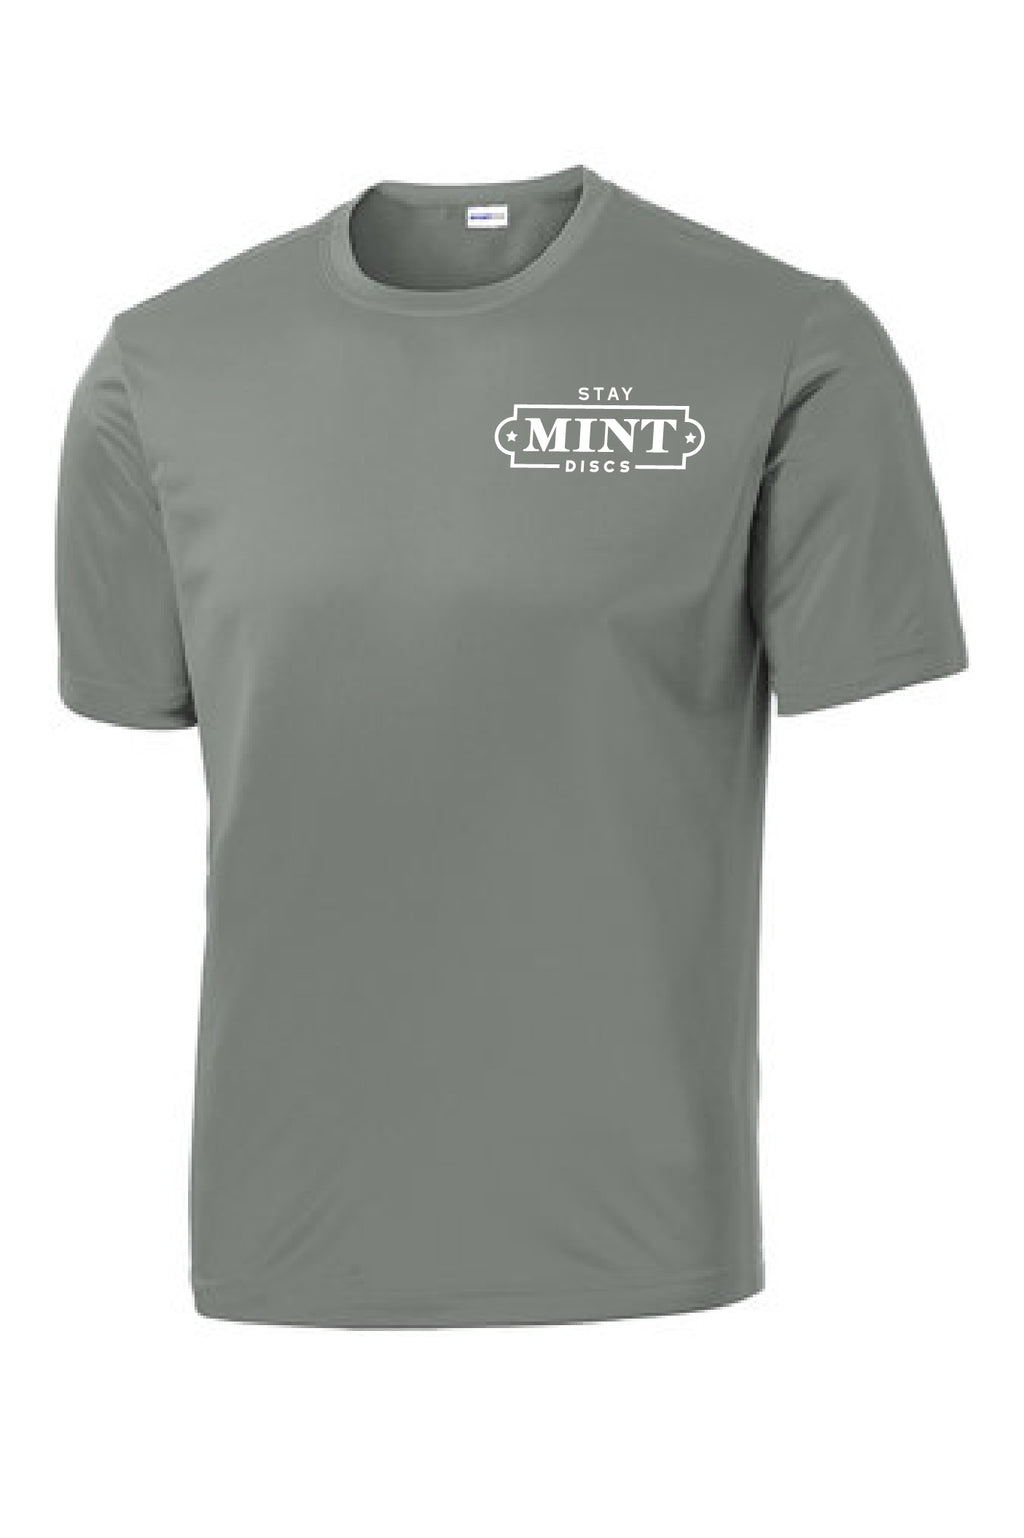 STAY Mint Discs Dri-fit T-Shirt